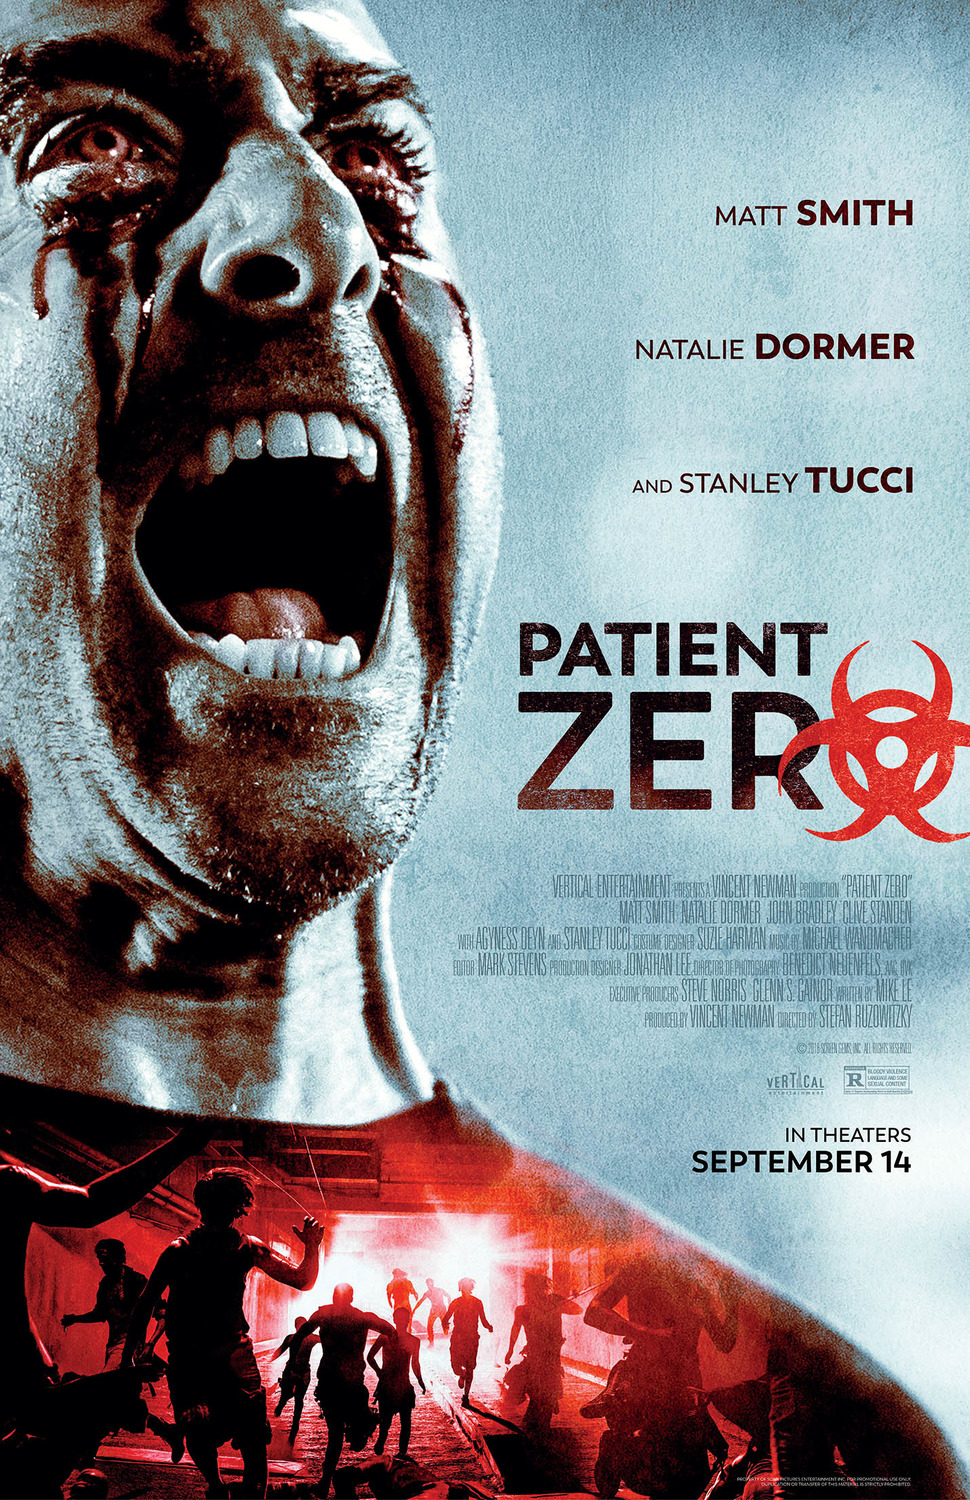 Patient Zero VF BDRIP